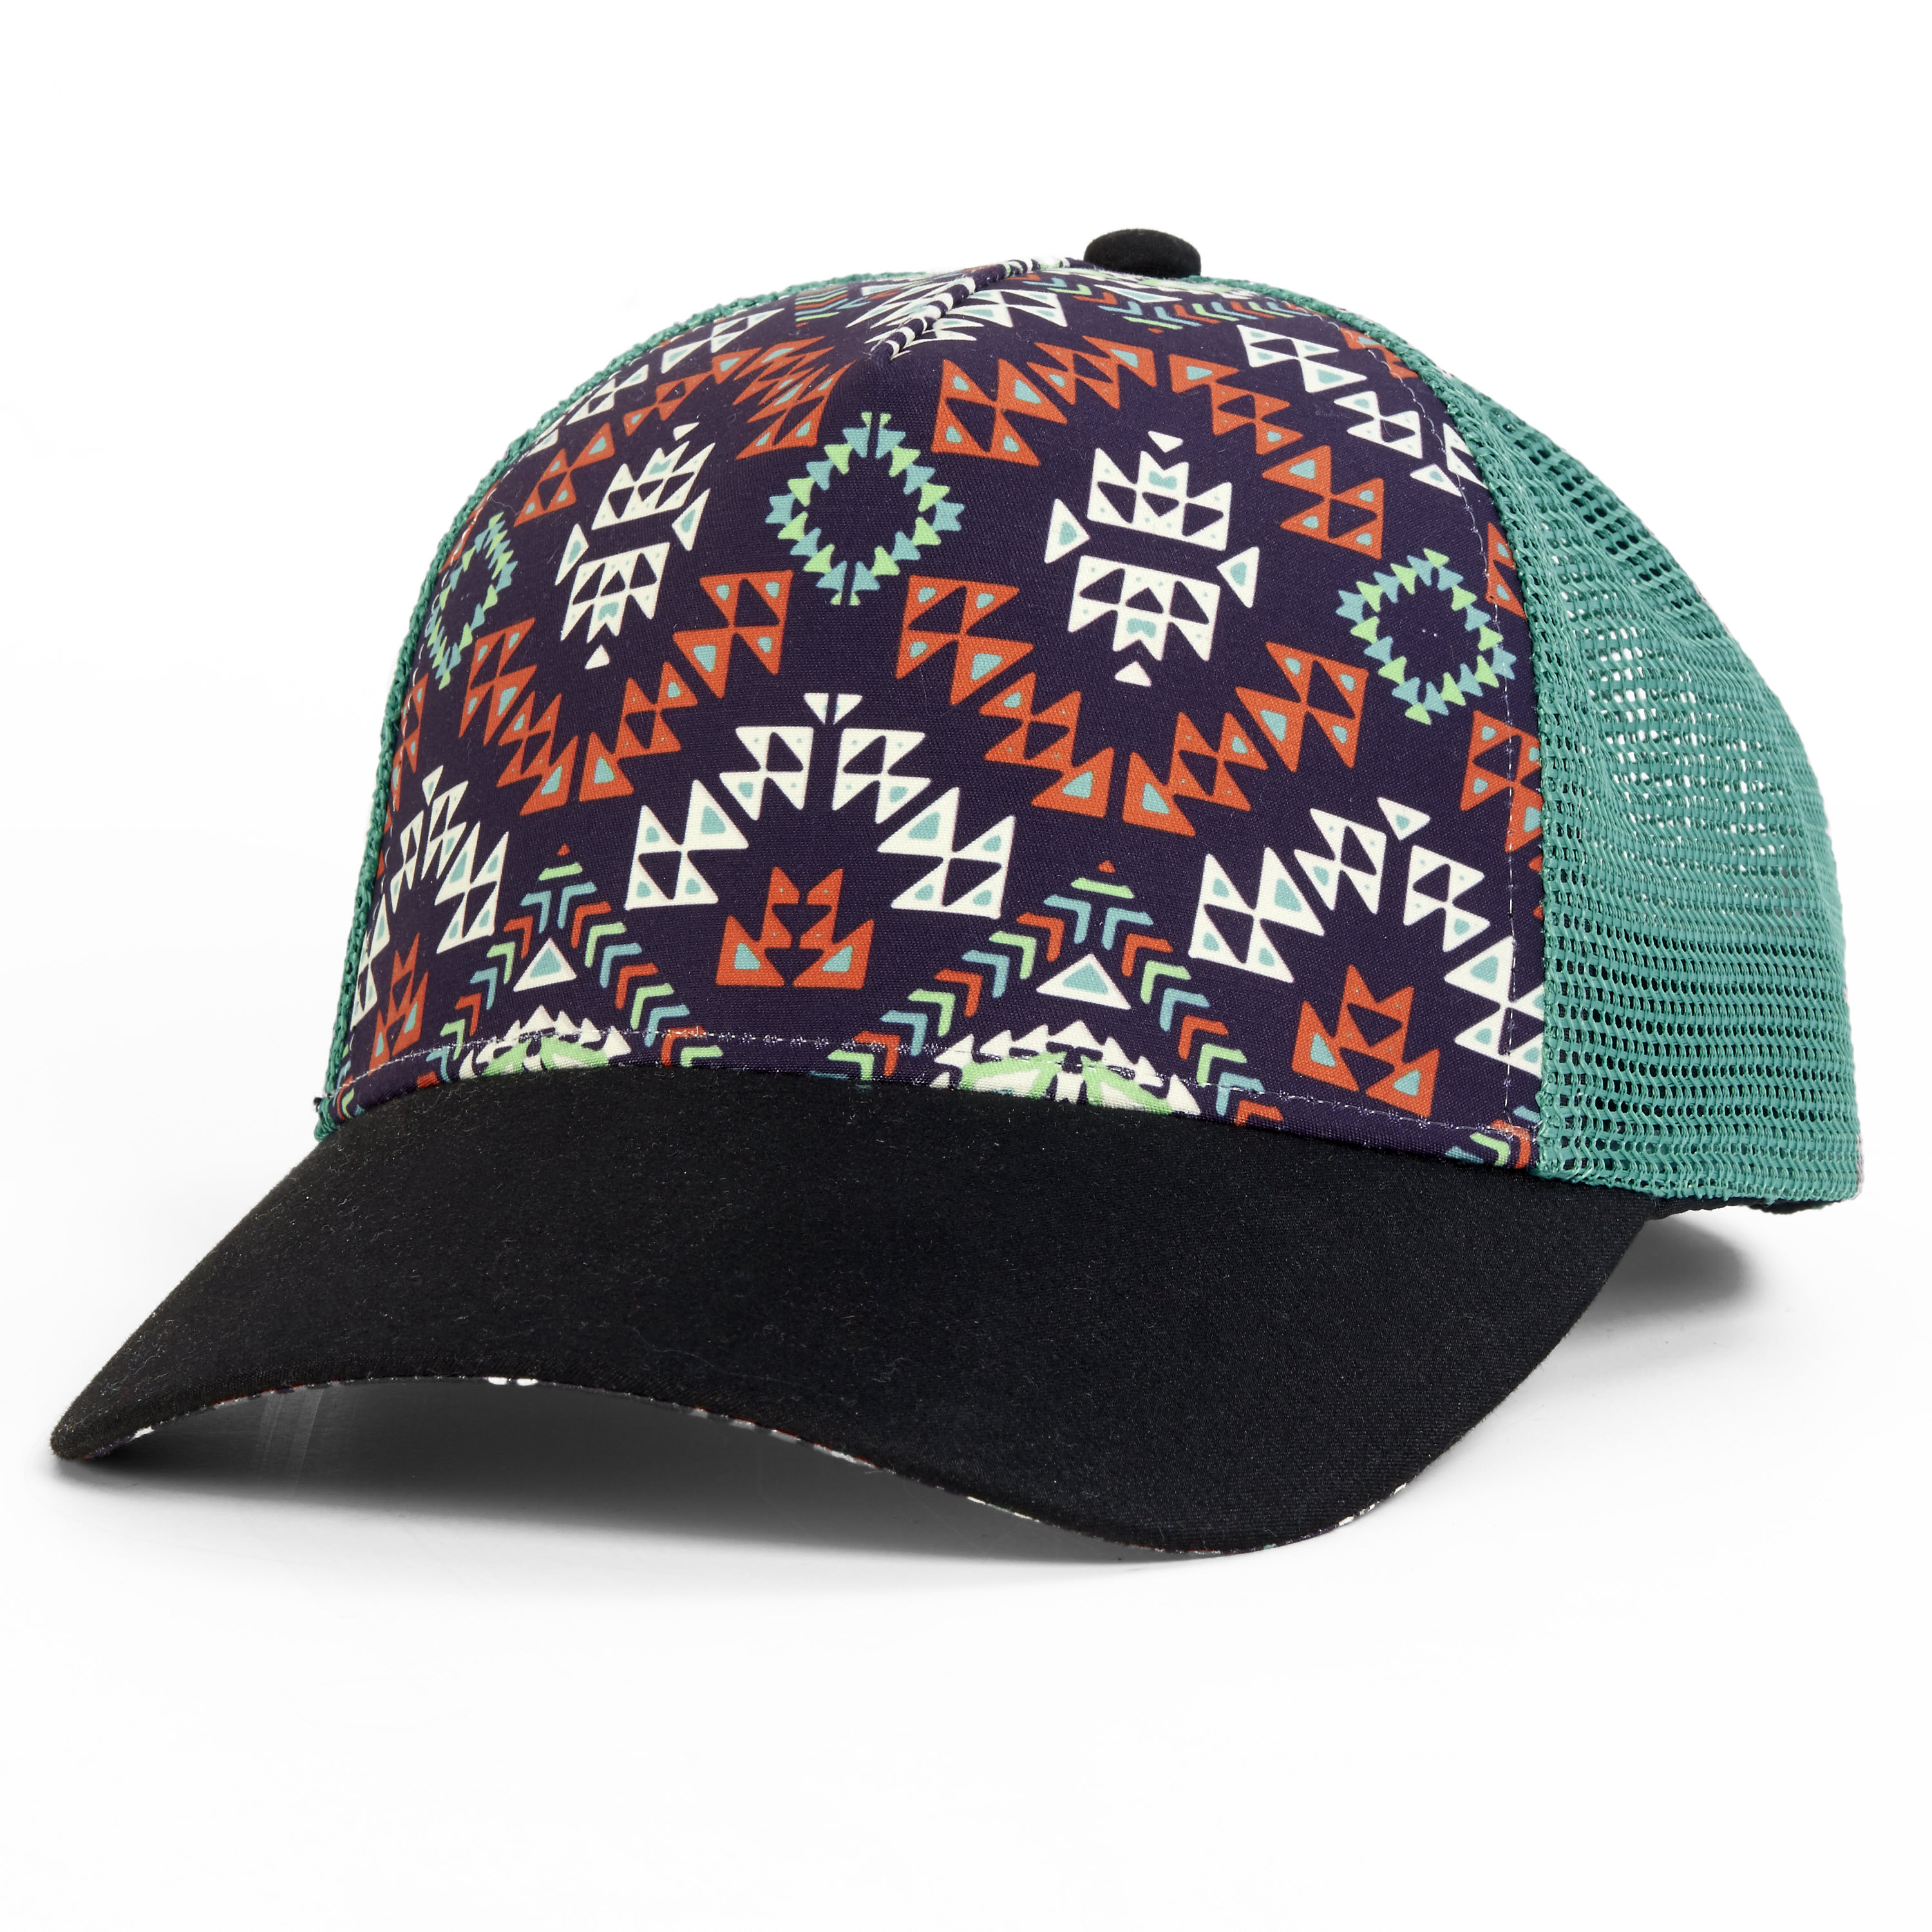 Turtle Fur Tribal Trucker Hat